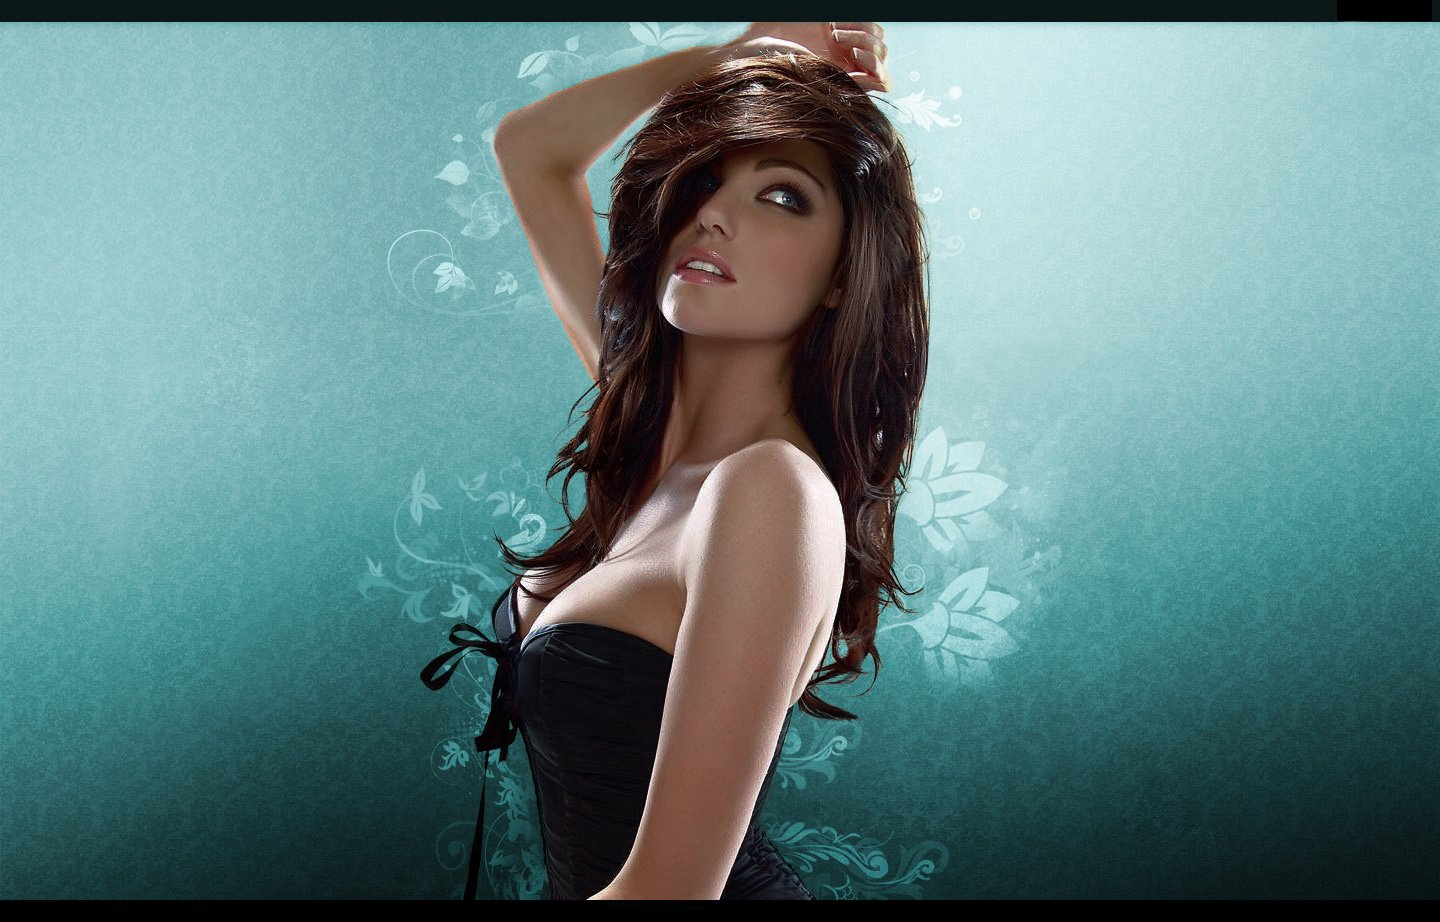 Wallpapers ID:512036